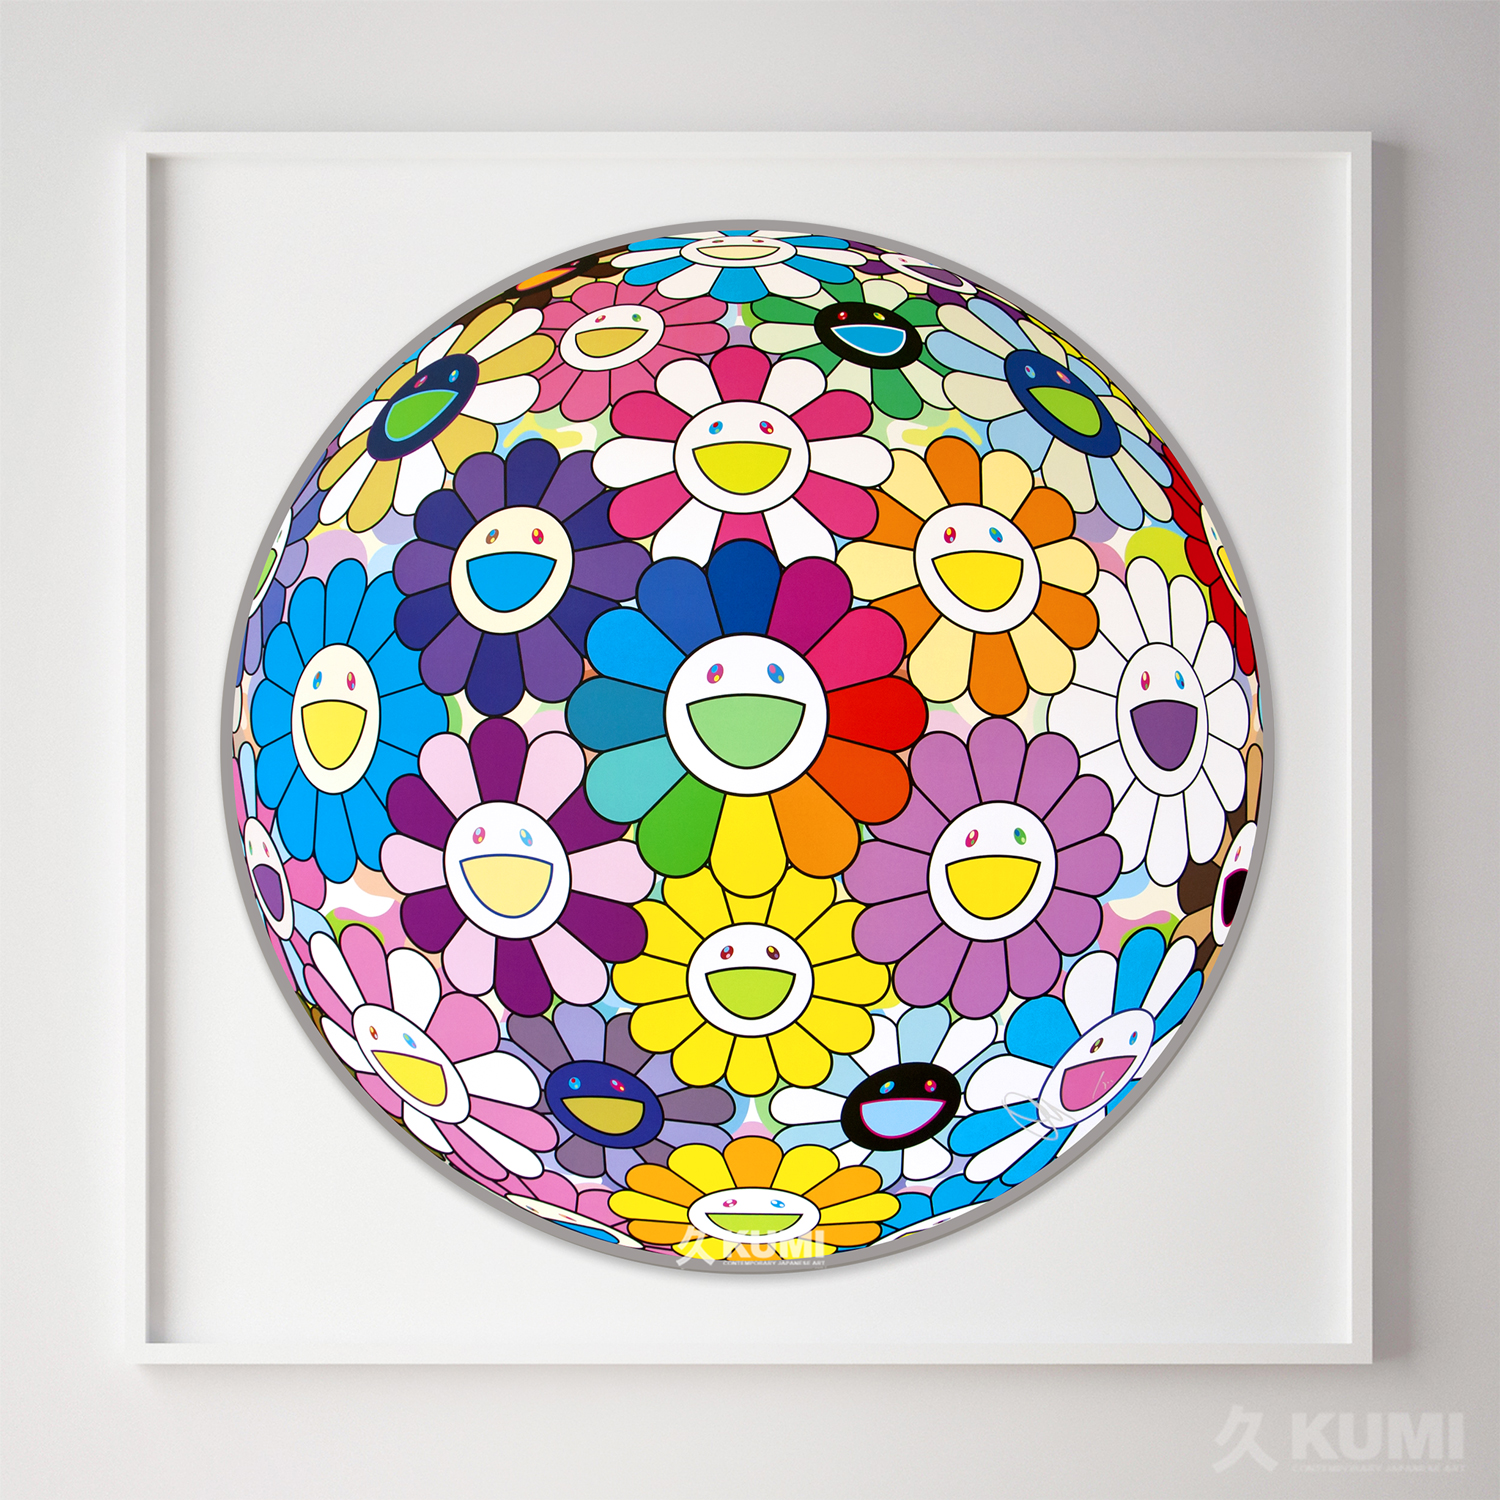 TAKASHI MURAKAMI Flower Ball (Annular Solar Eclipse)